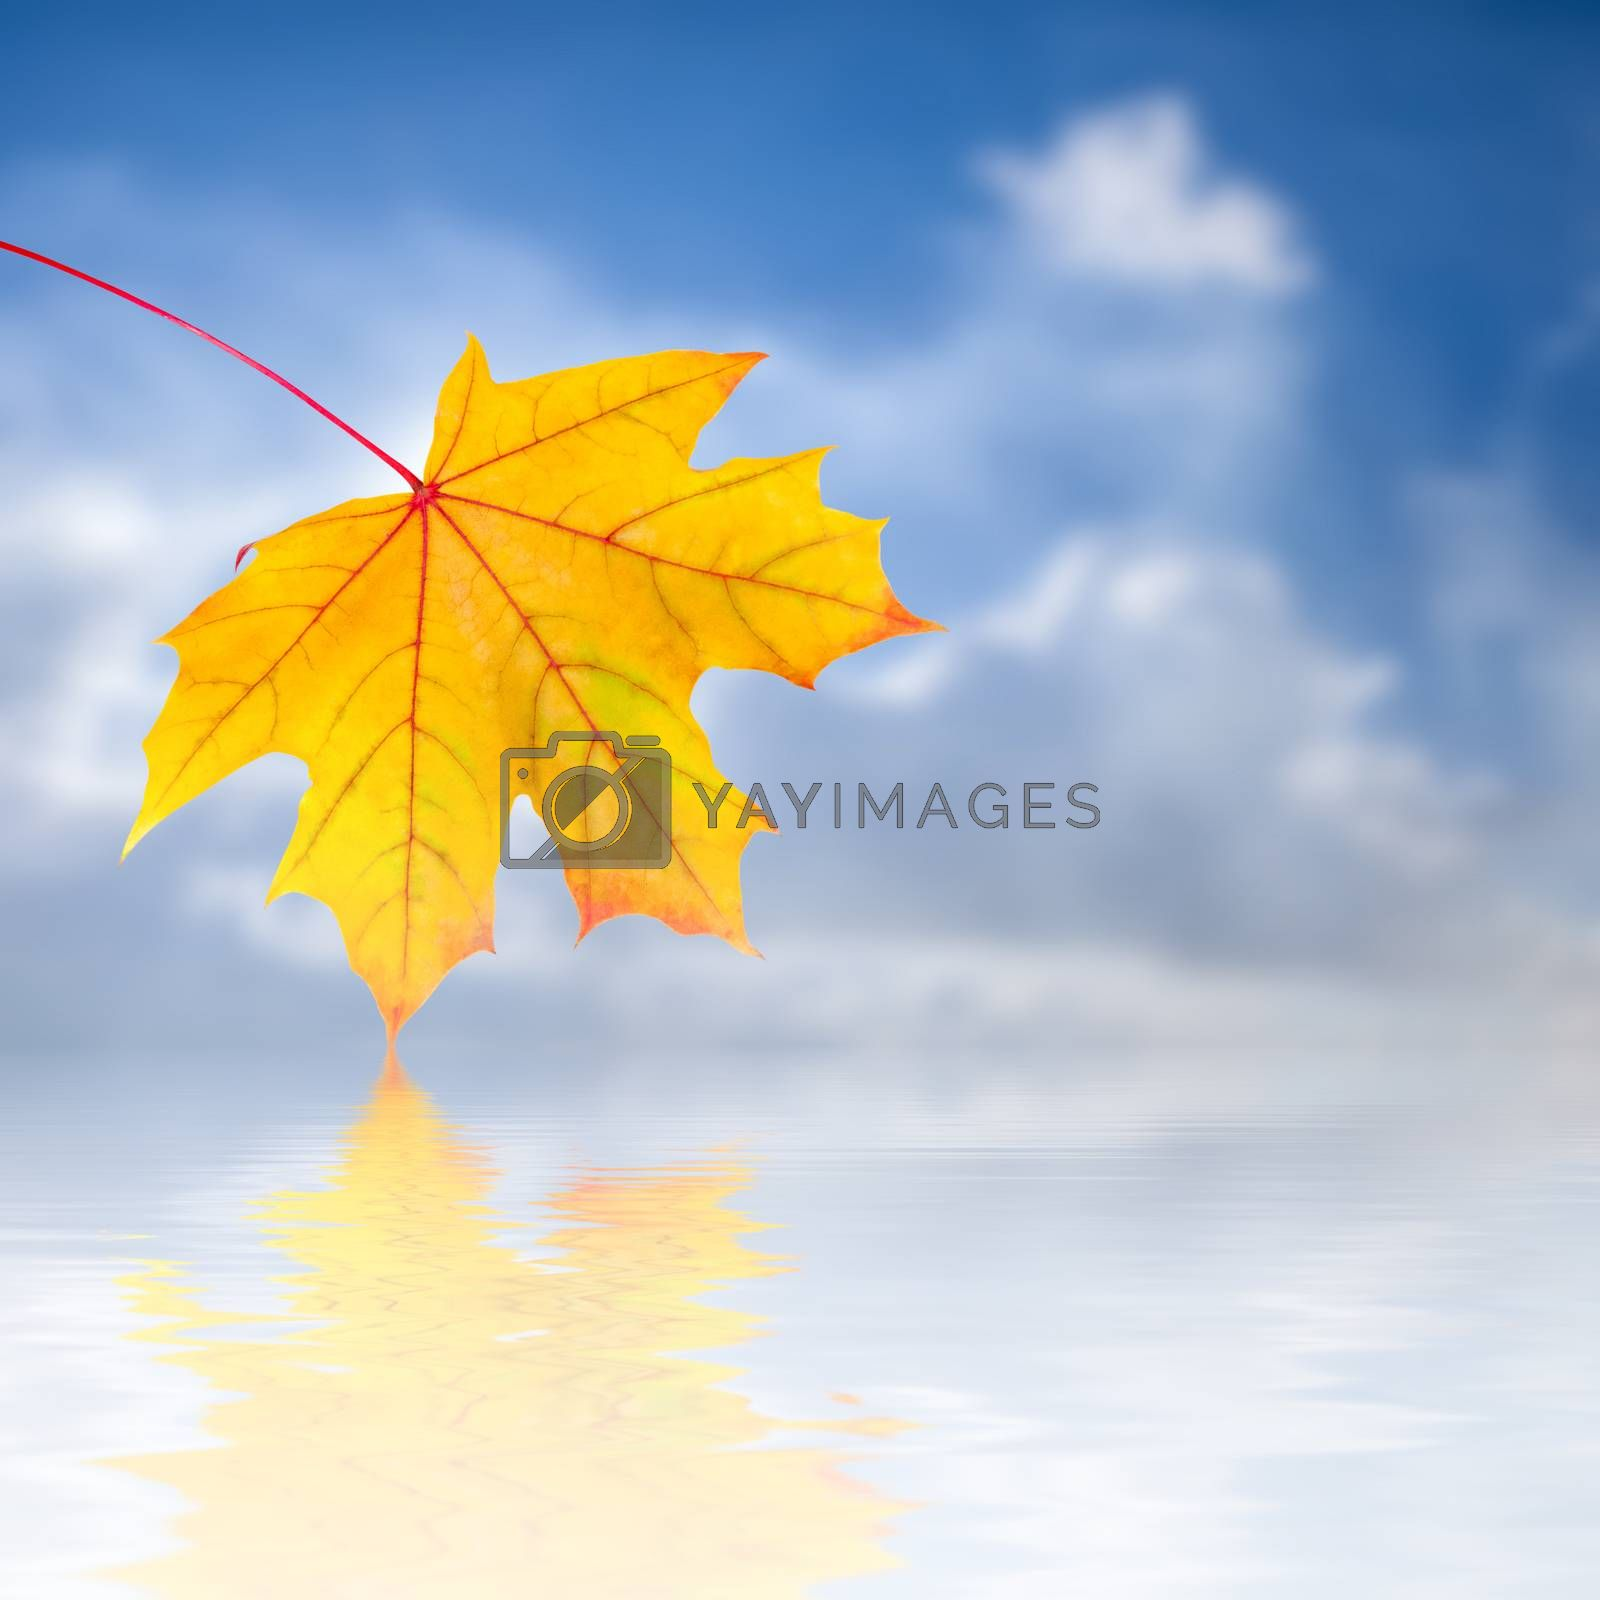 Autumn background with red, yellow and orange foliage